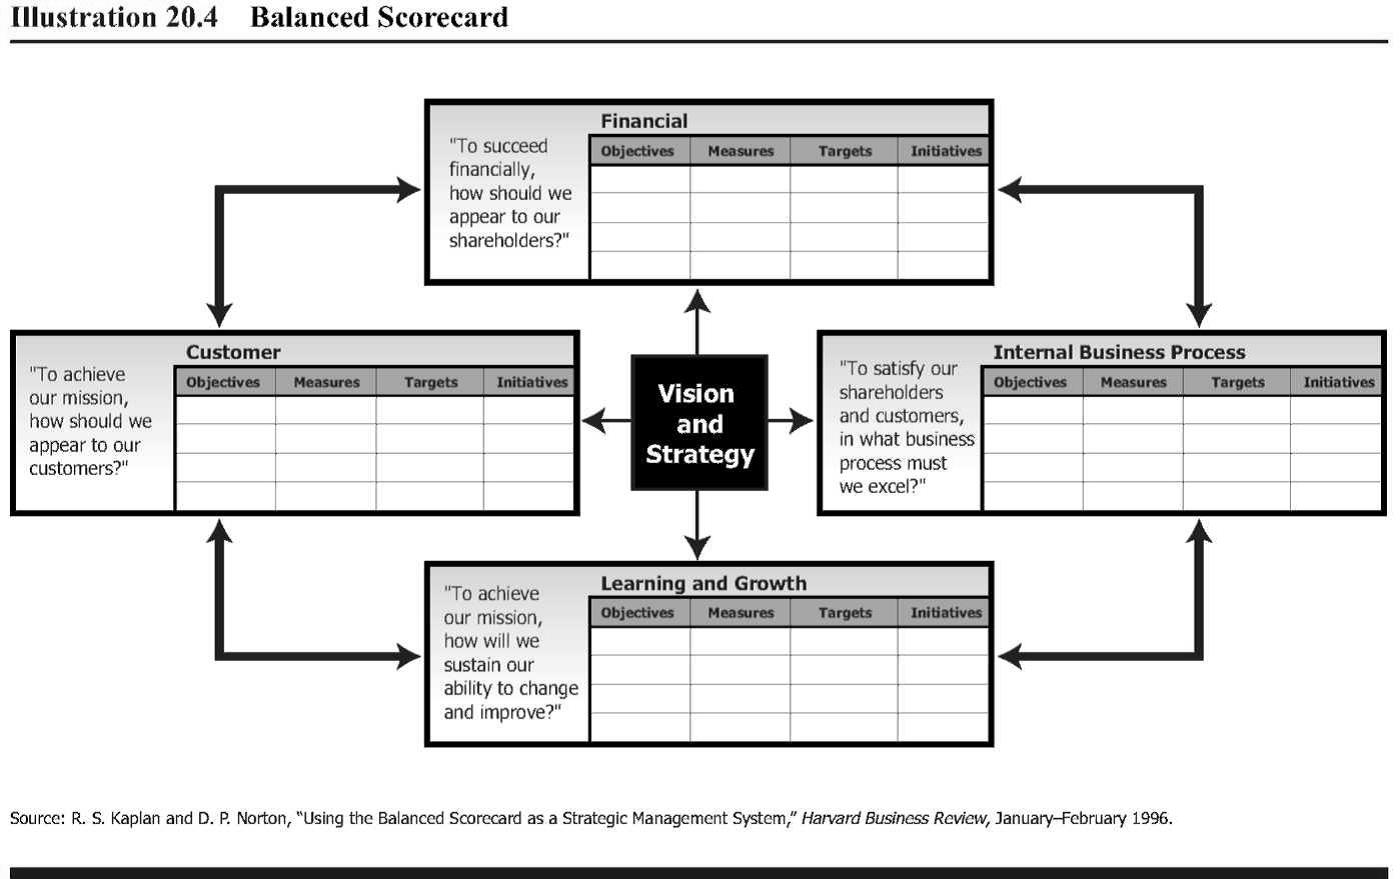 9.9 Balanced Scorecard | Managerial Accounting